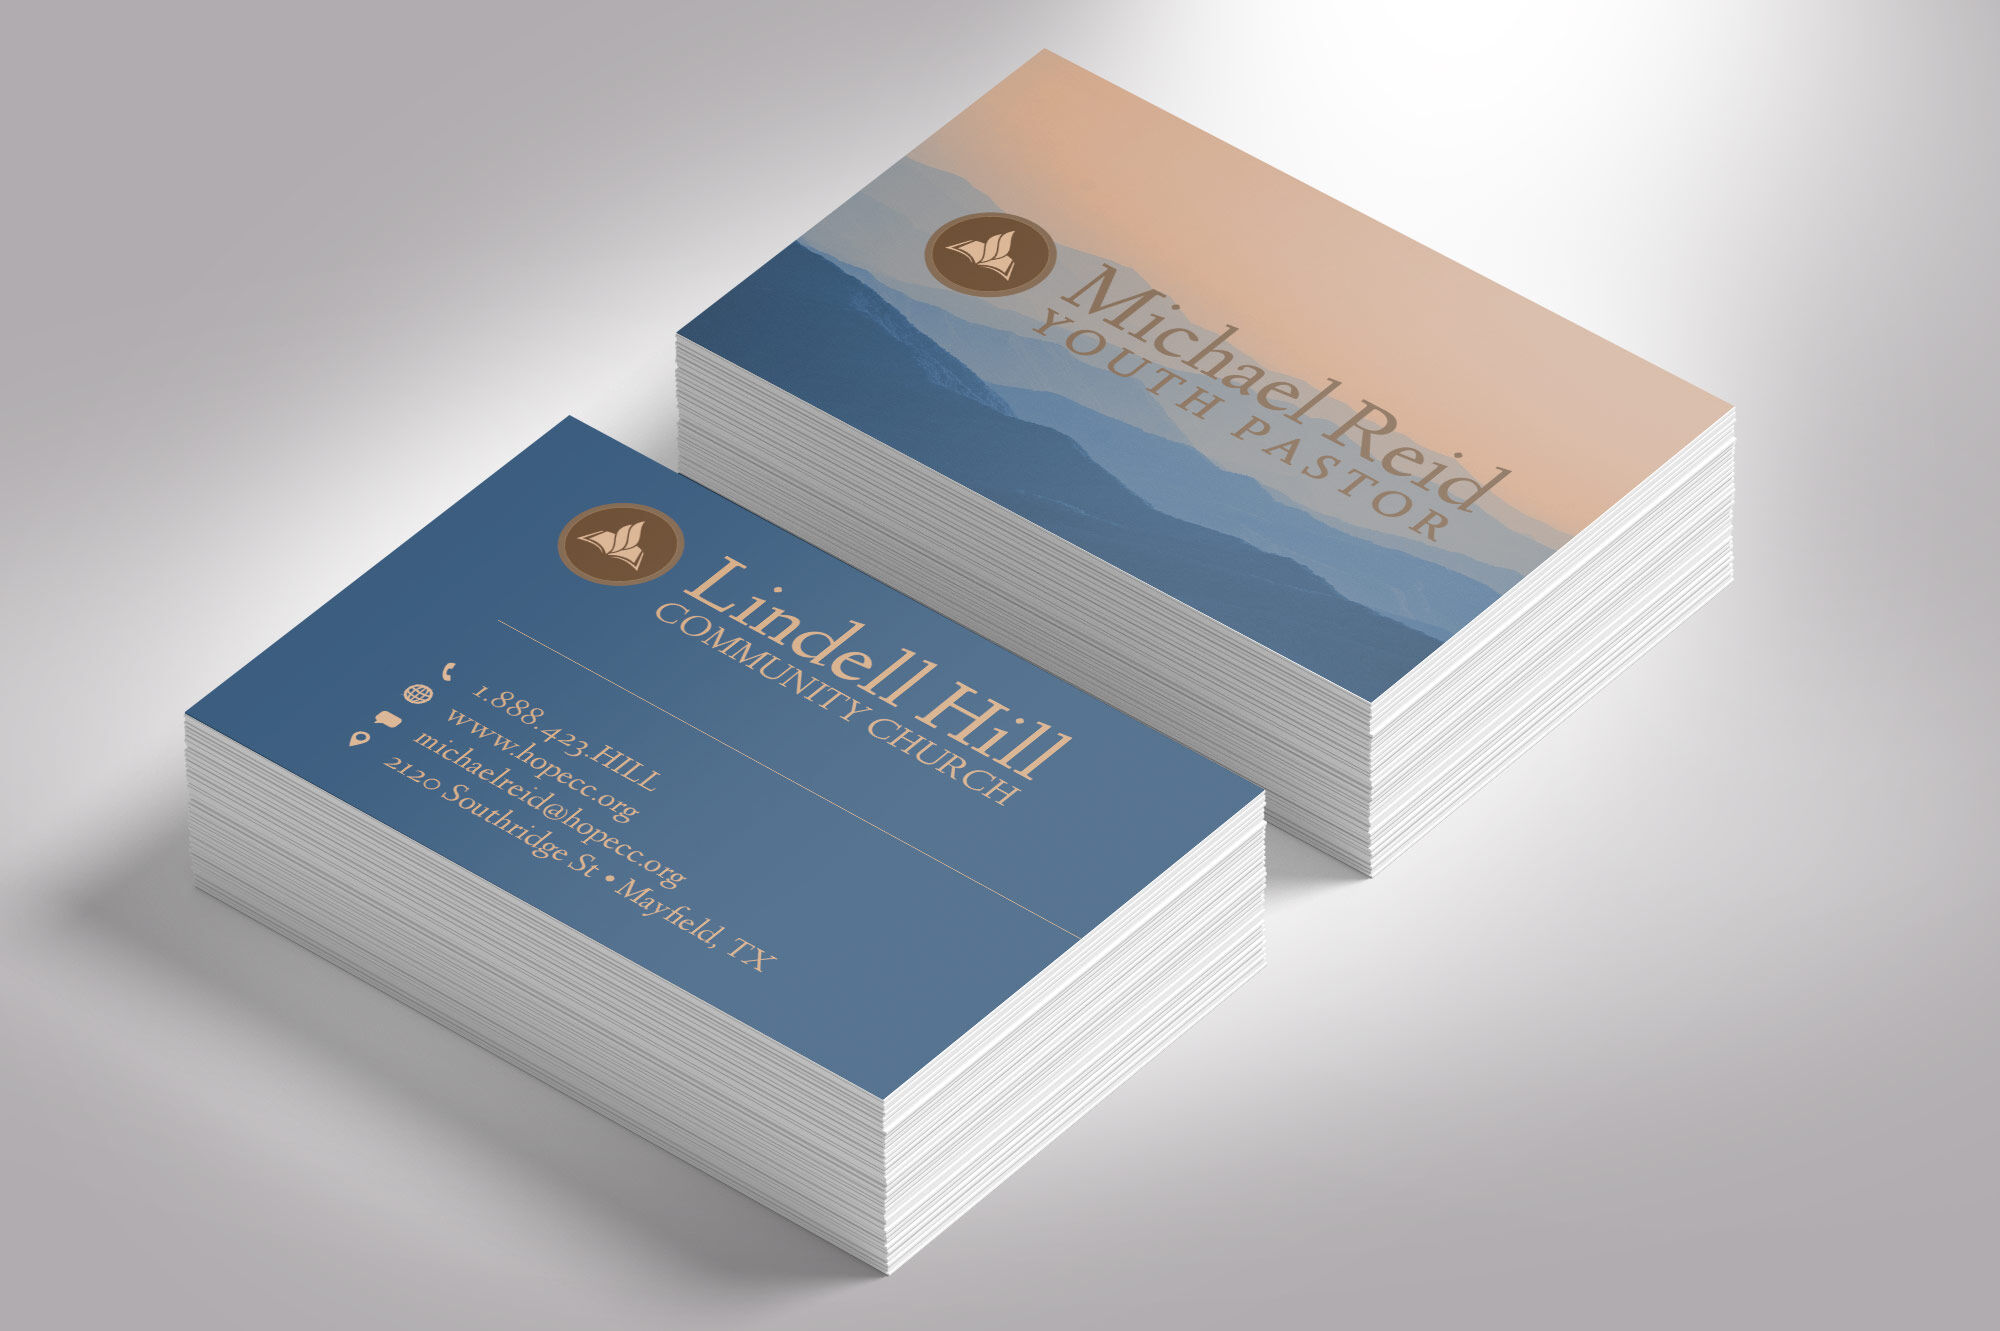 Church Business Card Photo By